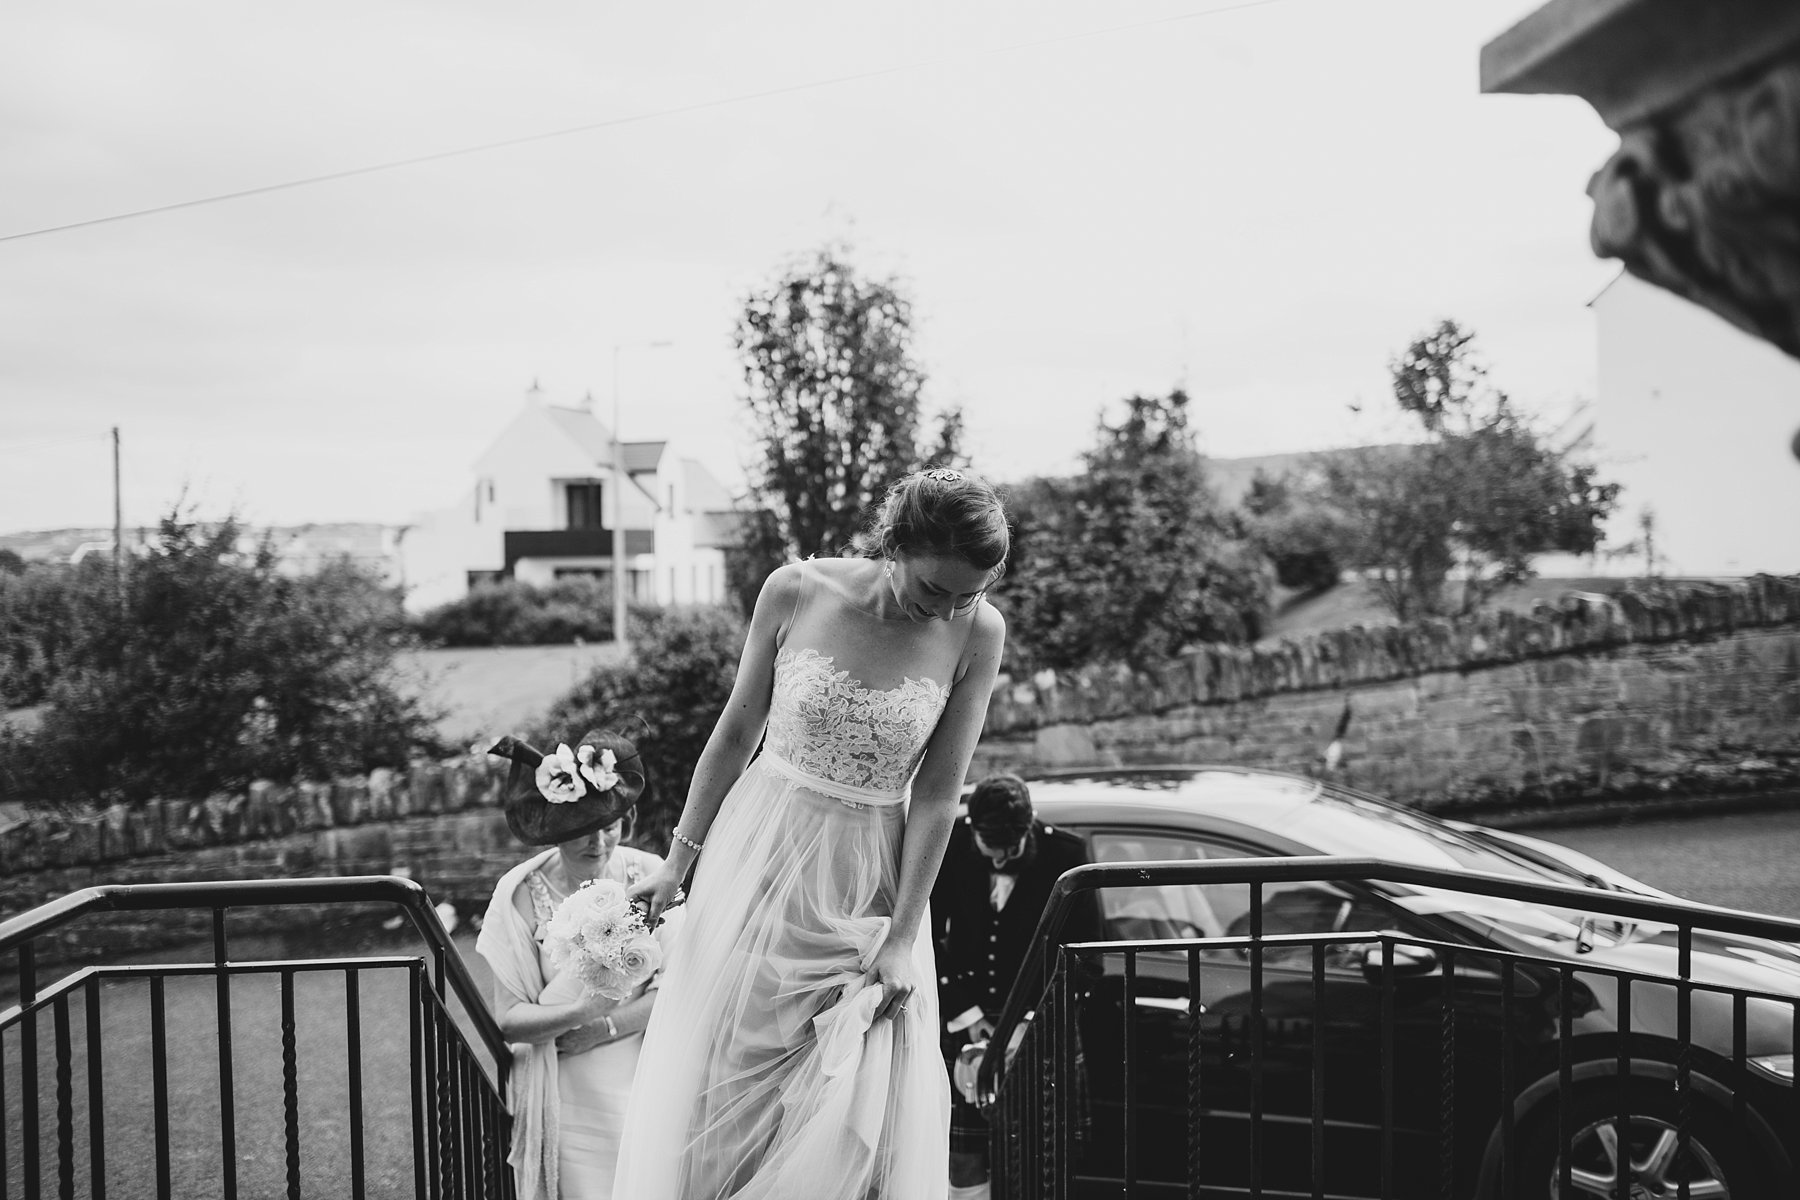 hornhead_donegak_elopement_weddings_0029